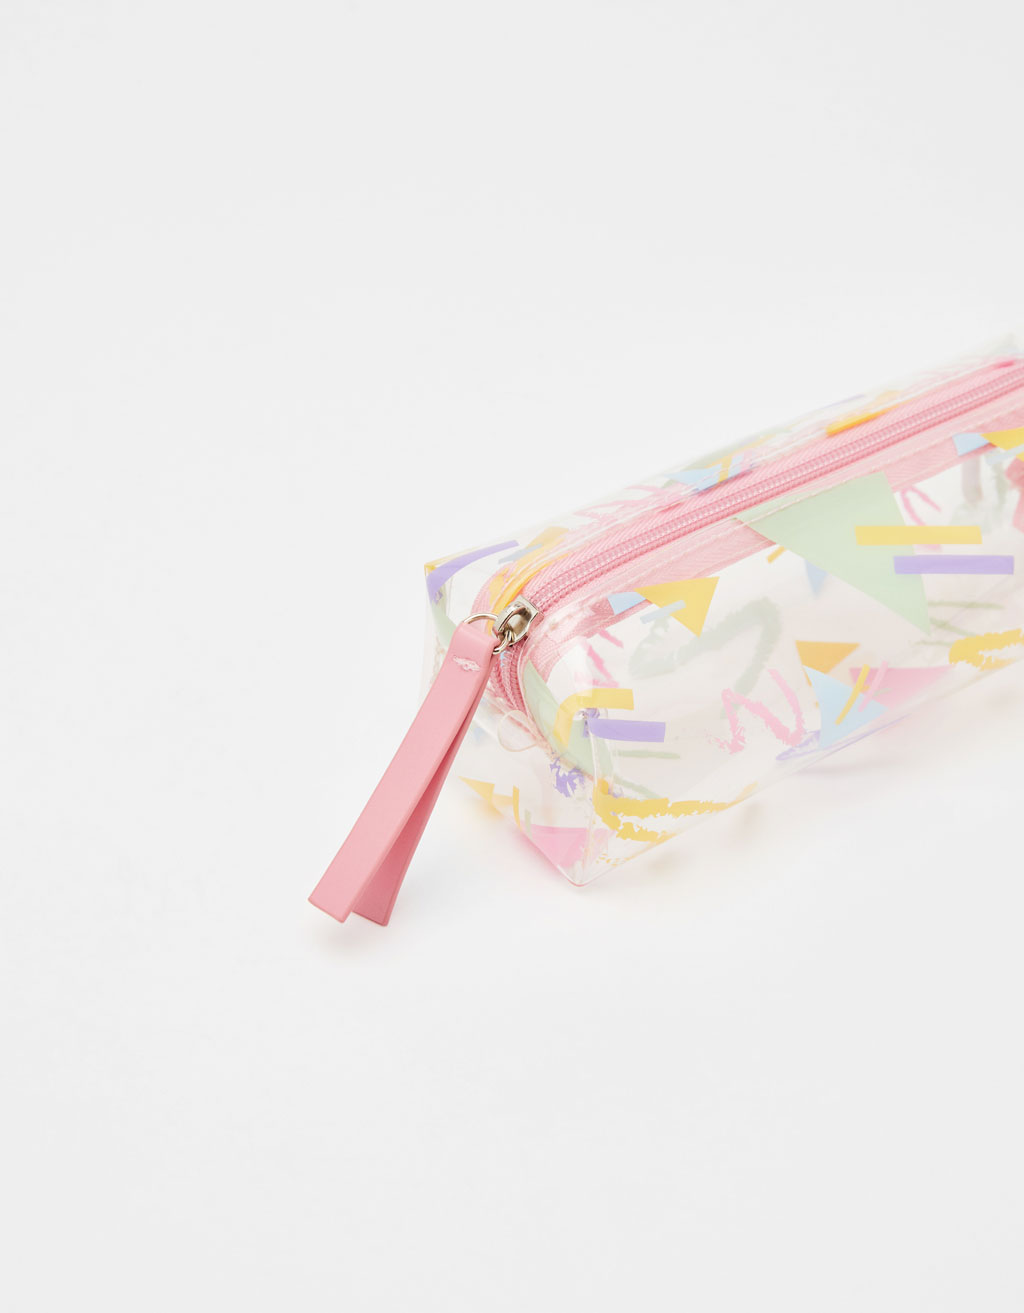 Transparent '80s pencil case